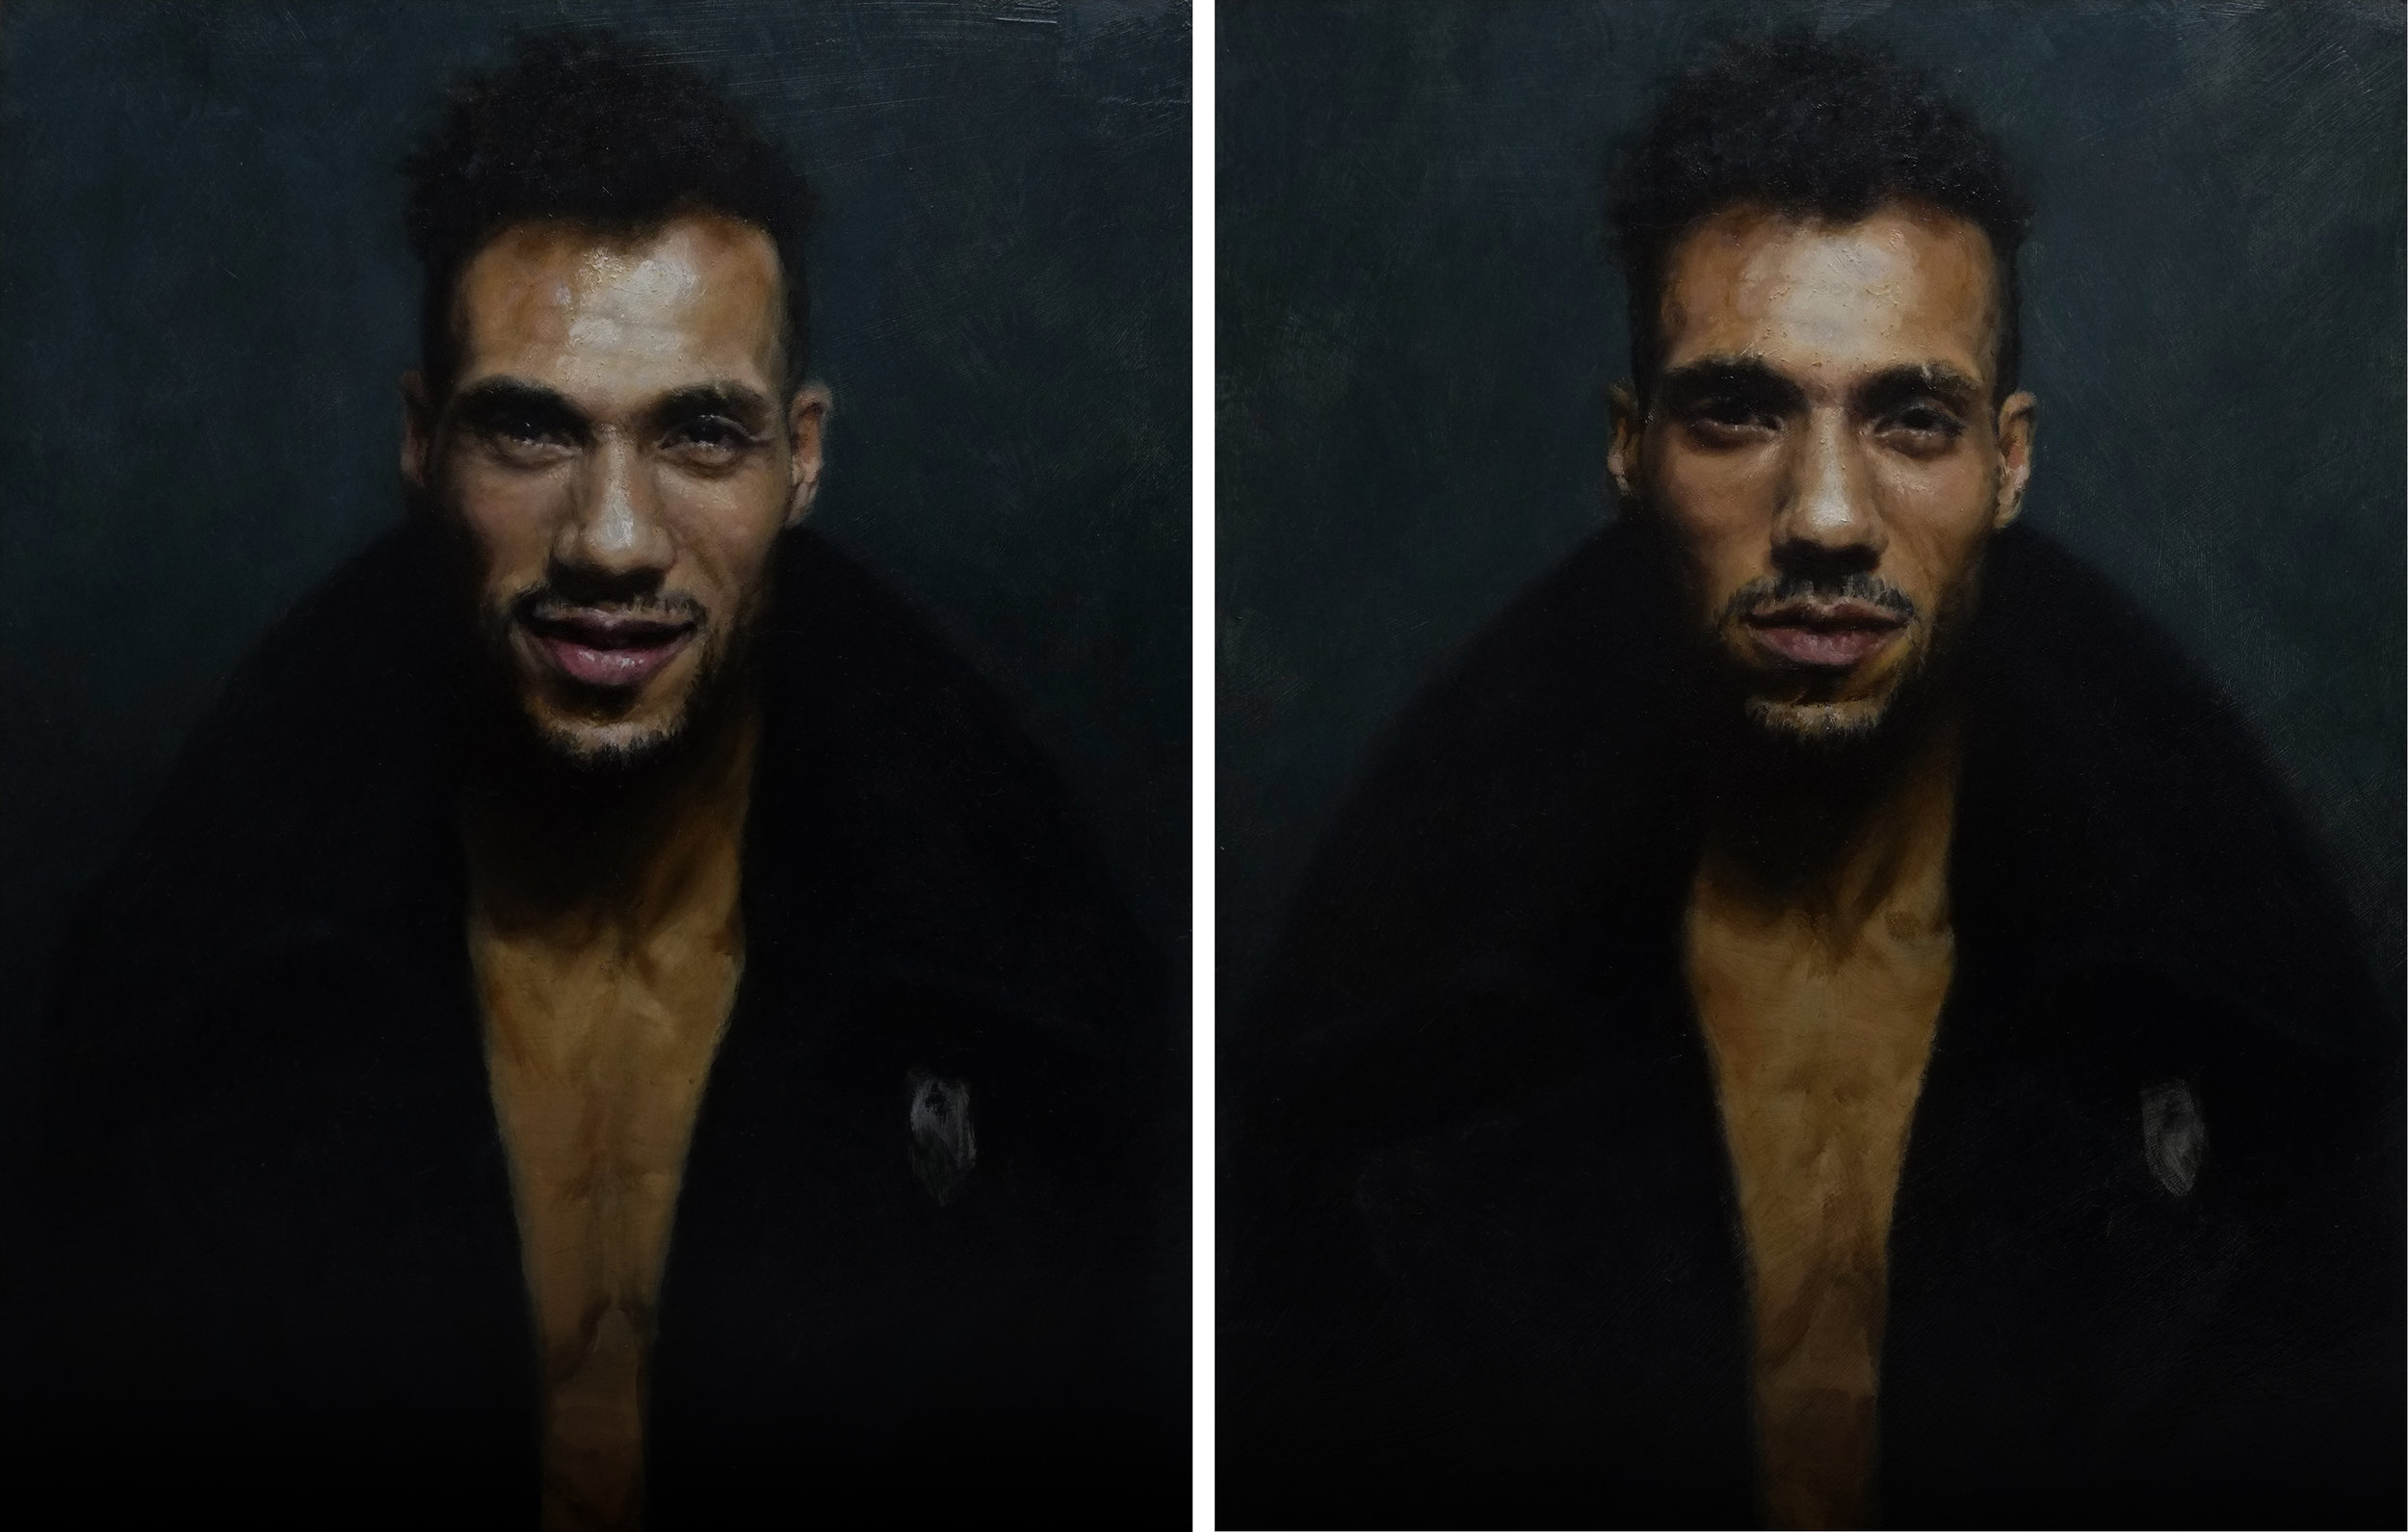 Alessandro Tomassetti  |  I Know It's Over 1 & 2  | Oil on Aluminum | 14 x 11 inches each or 35 ½ x 28 cm each